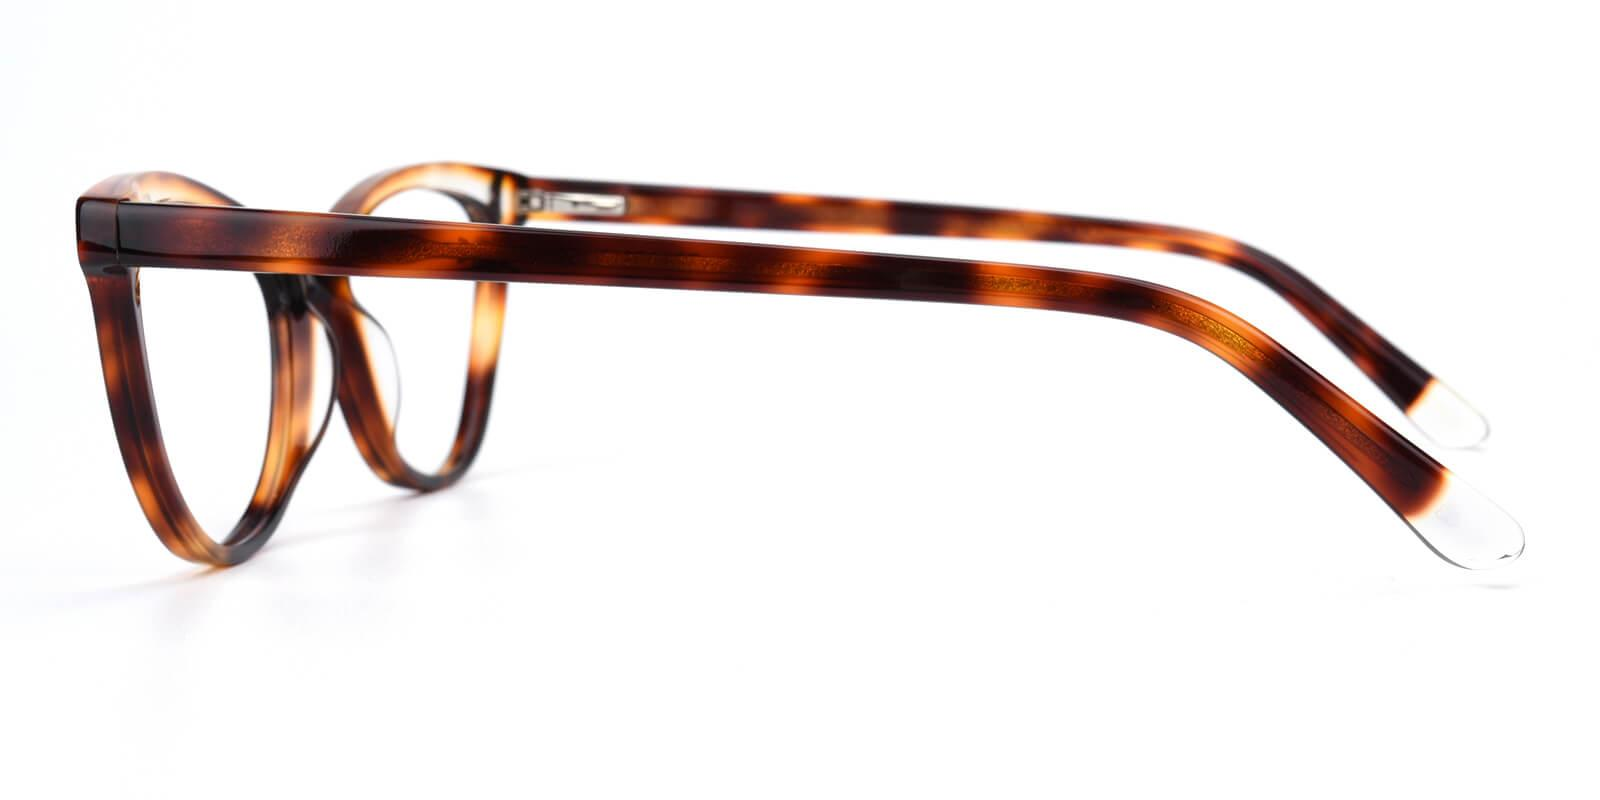 Florencer-Tortoise-Oval / Cat-Acetate-Eyeglasses-detail